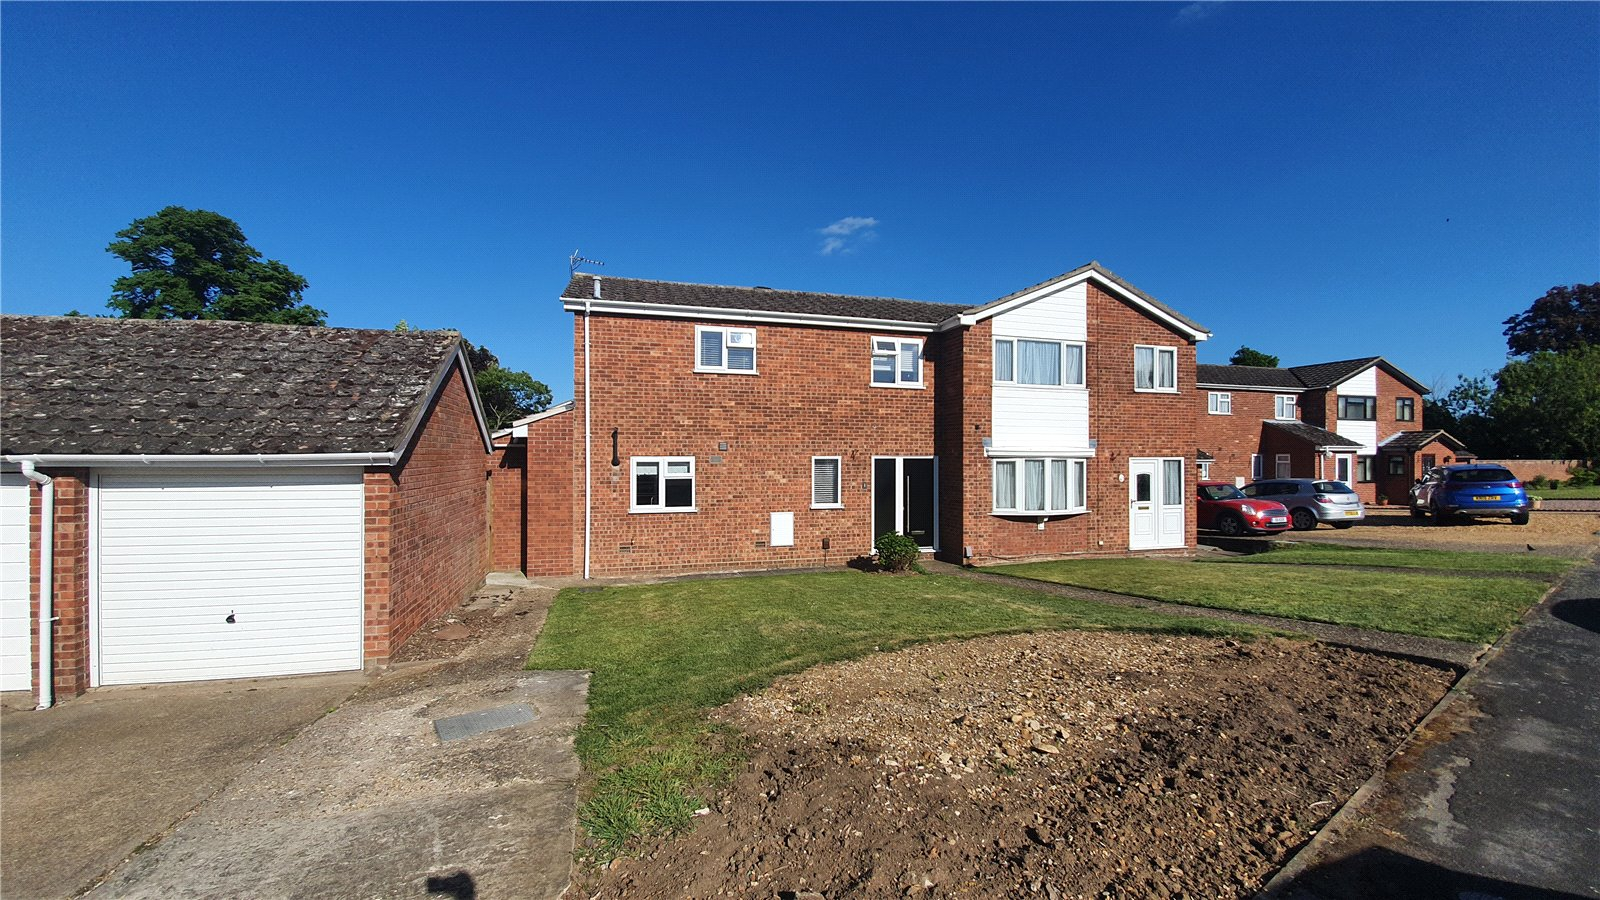 3 bed house for sale in The Sycamores, Little Paxton, PE19